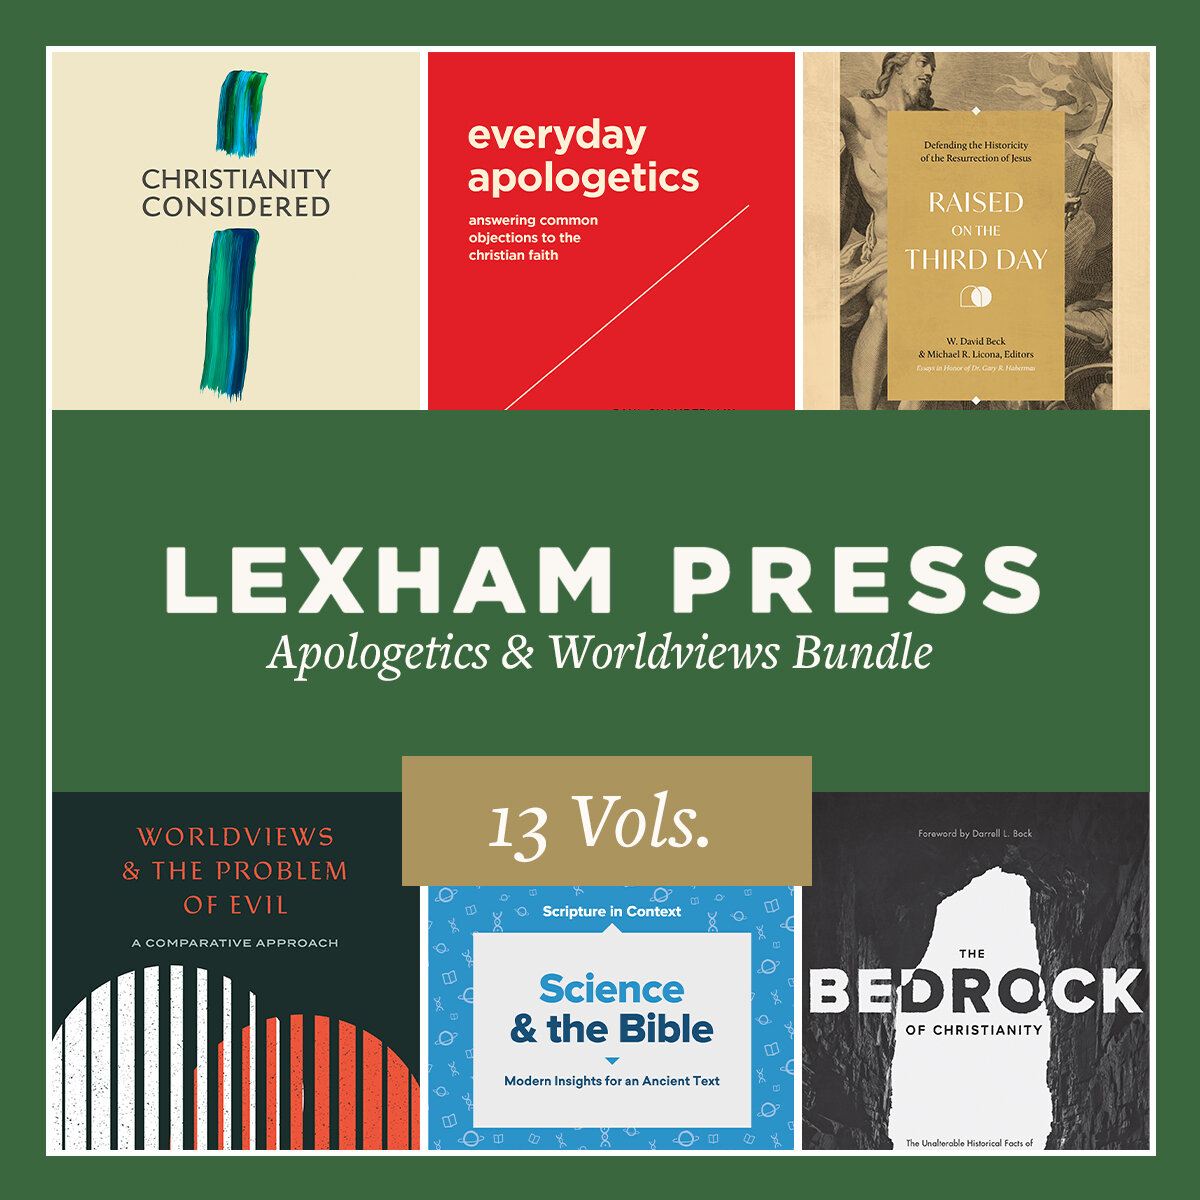 Lexham Press Apologetics & Worldviews Bundle (13 vols.)